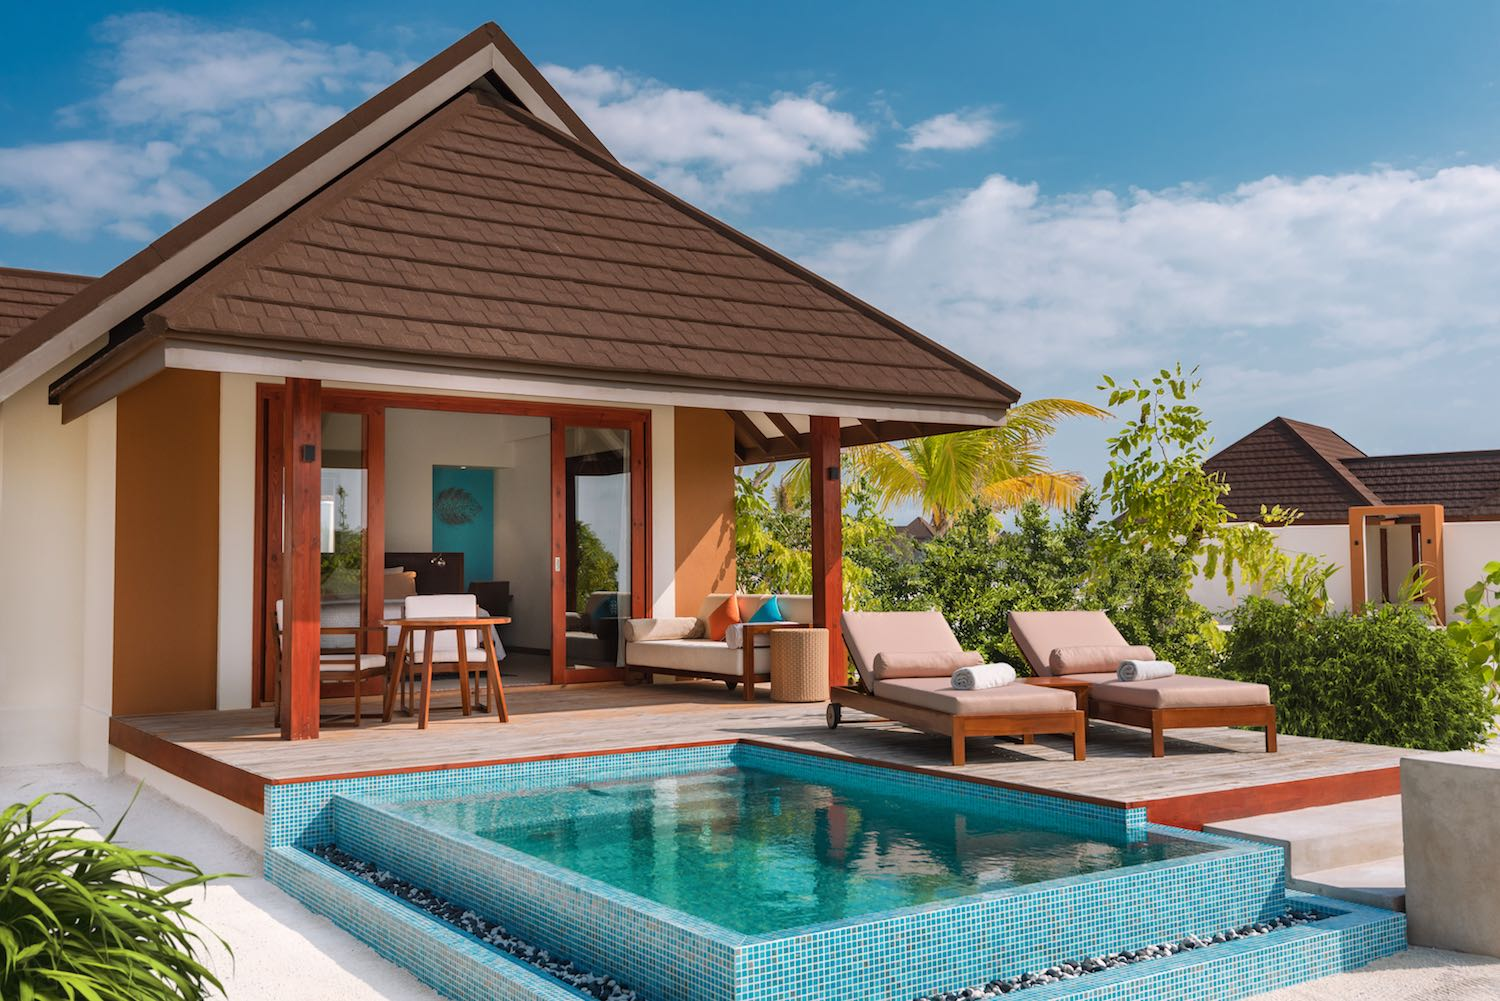 maldives-varu-by-atmosphere-beach-villa-with-pool-villa-exterior-view-holiday-honeymoon-vacation-invite-to-paradise.jpg